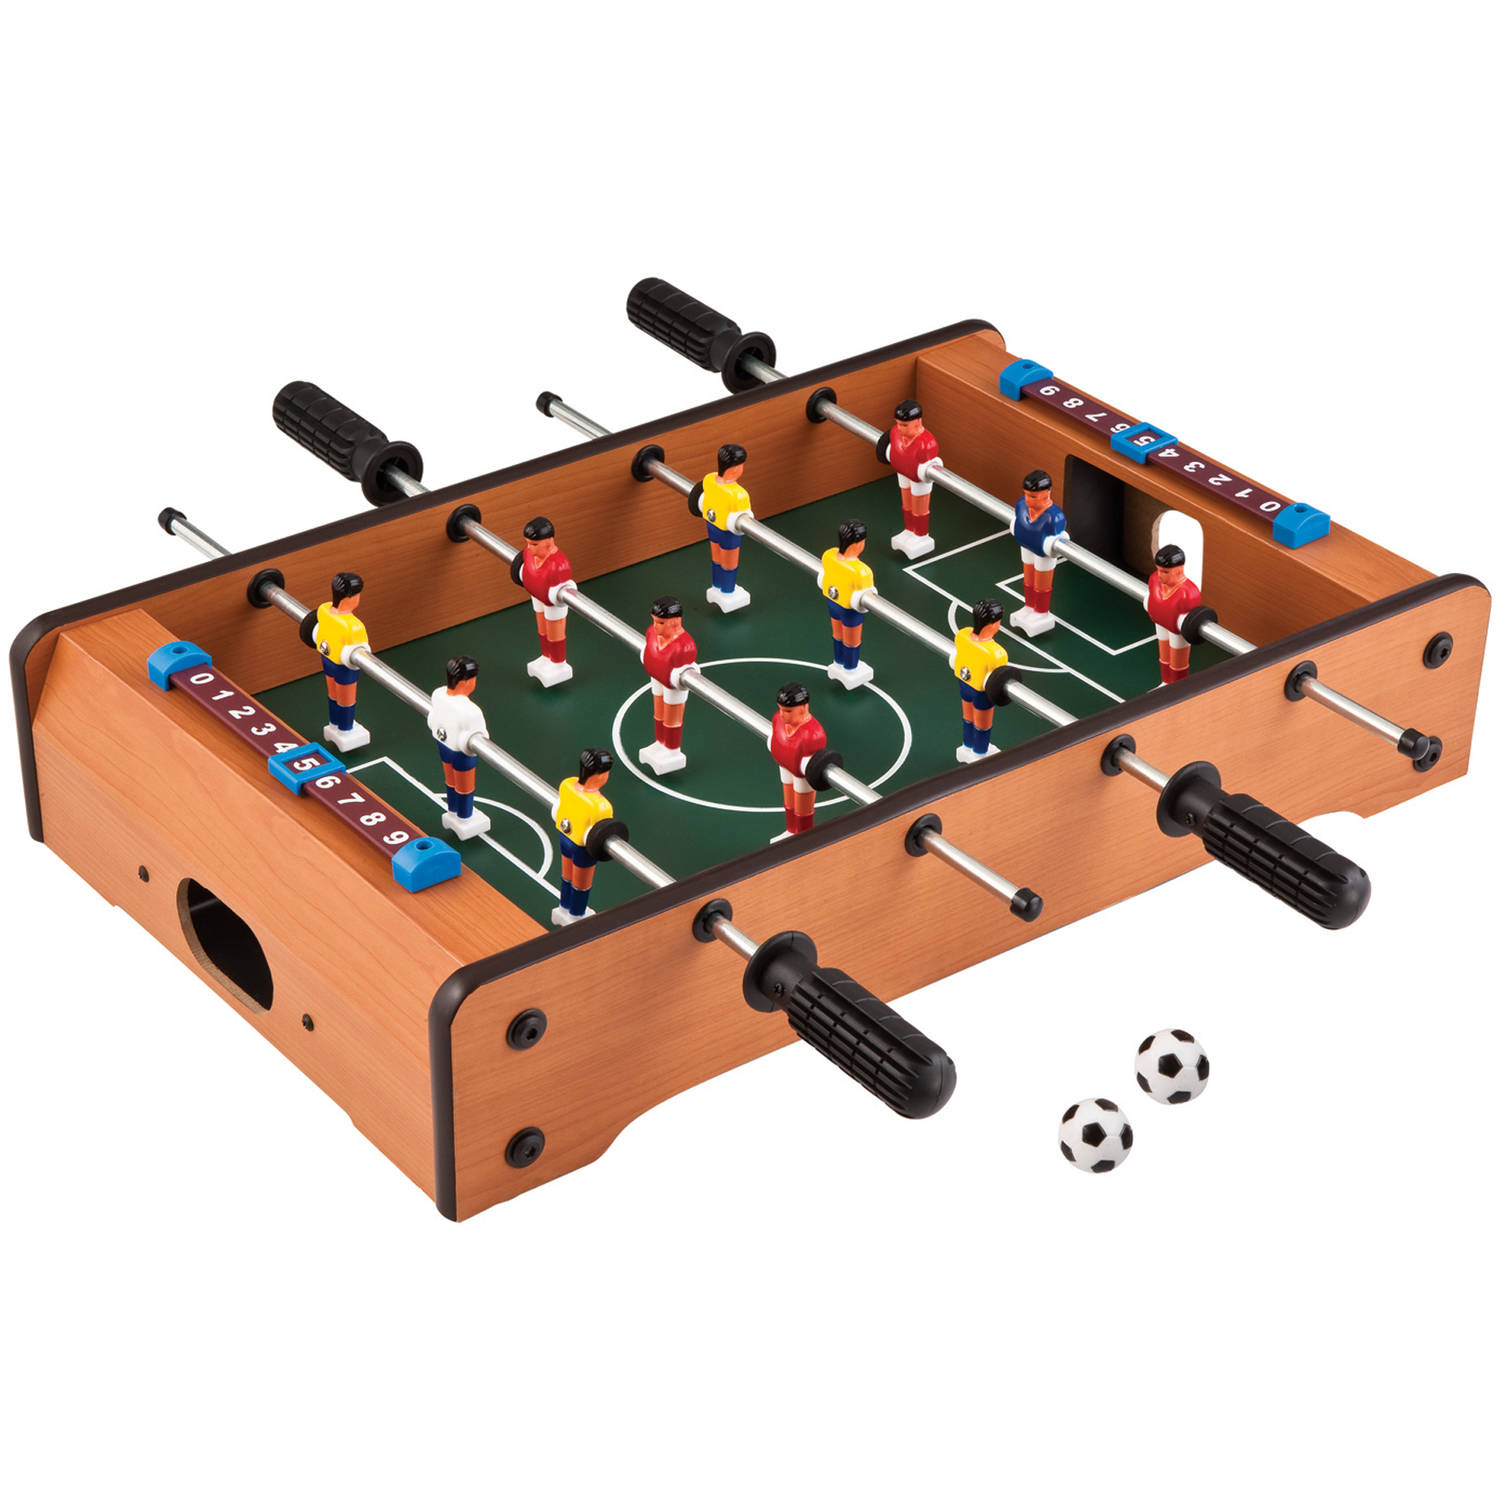 Mainstreet Classics Table Top Foosball Table, 25Lx20Wx4H by Generic